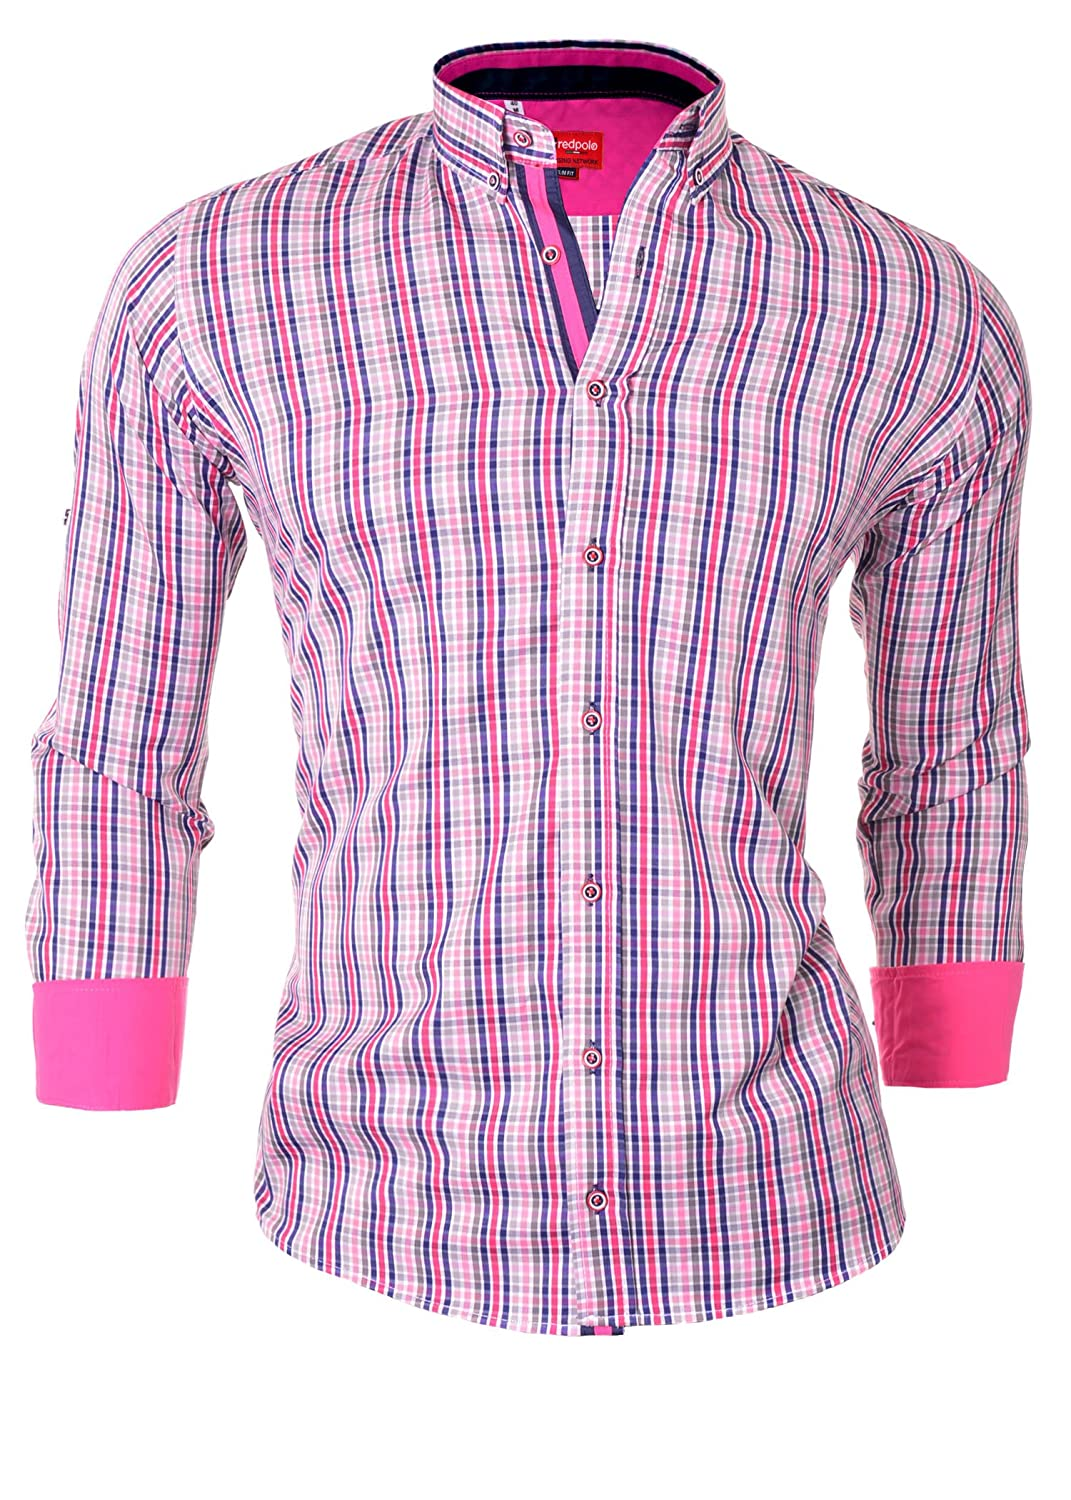 D&R Fashion Men's Shirt with Check Pattern Roll-Up Sleeve and Button Down Collar